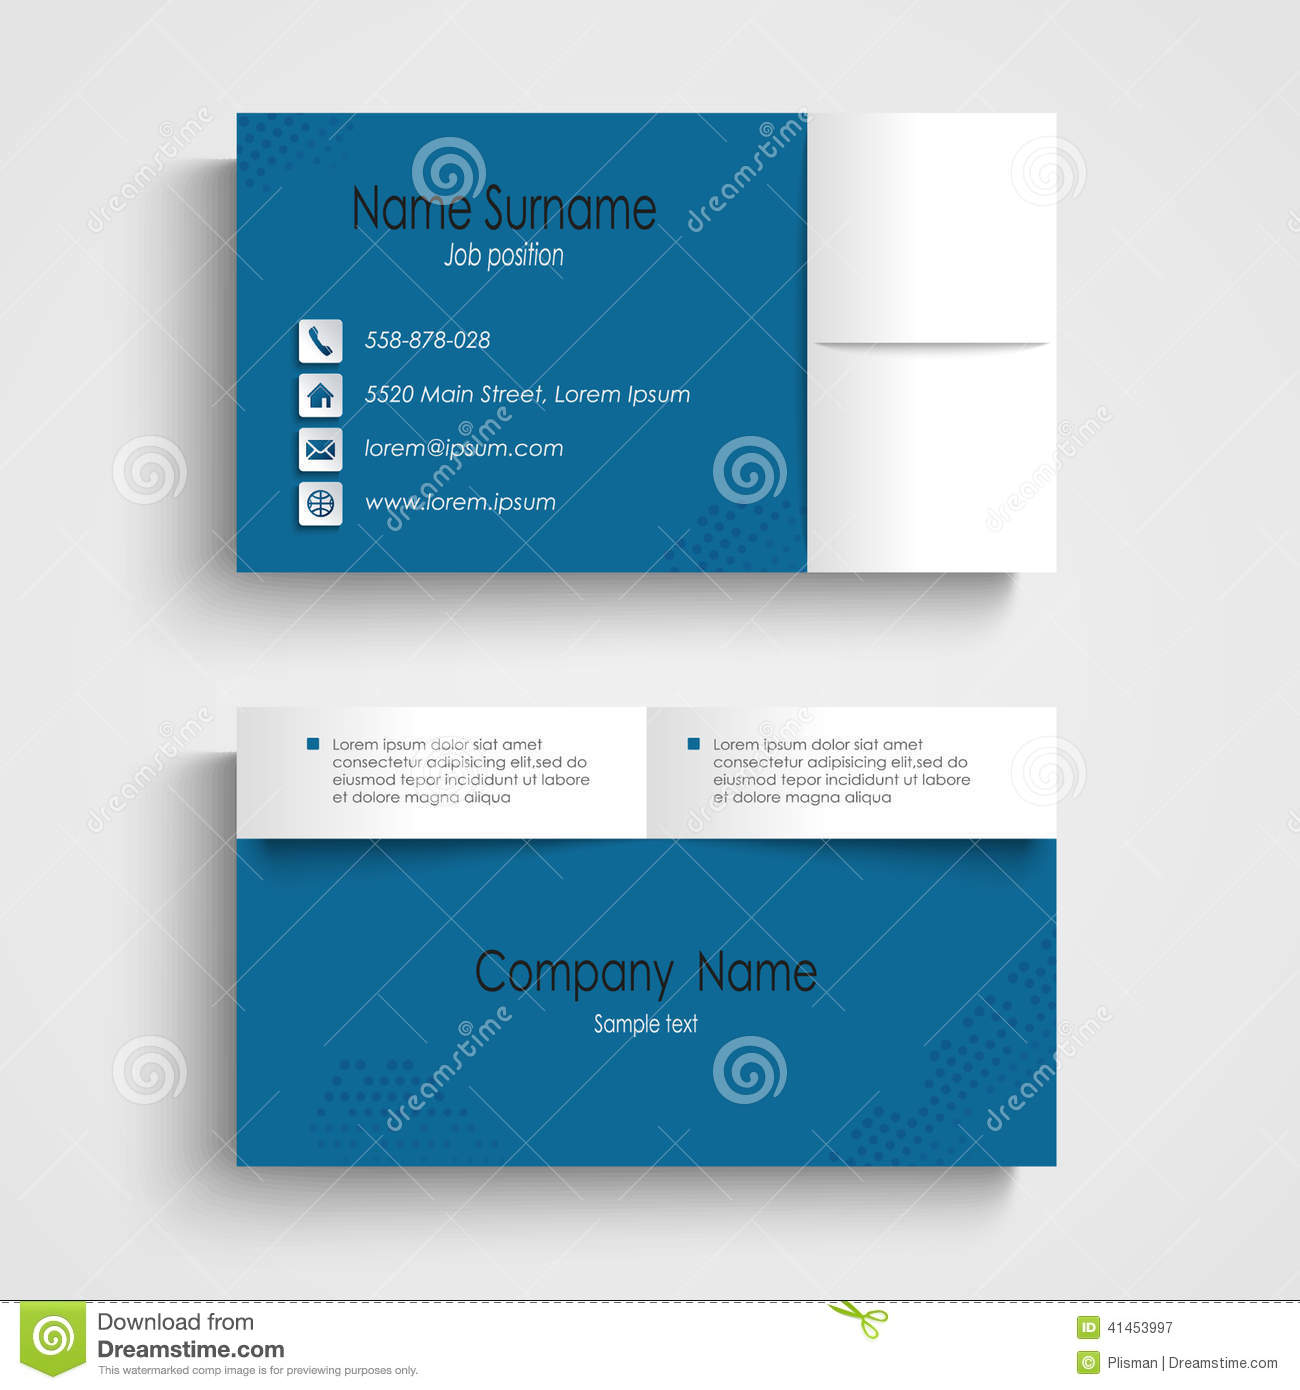 Modern sample blue business card template stock vector modern sample blue business card template accmission Image collections